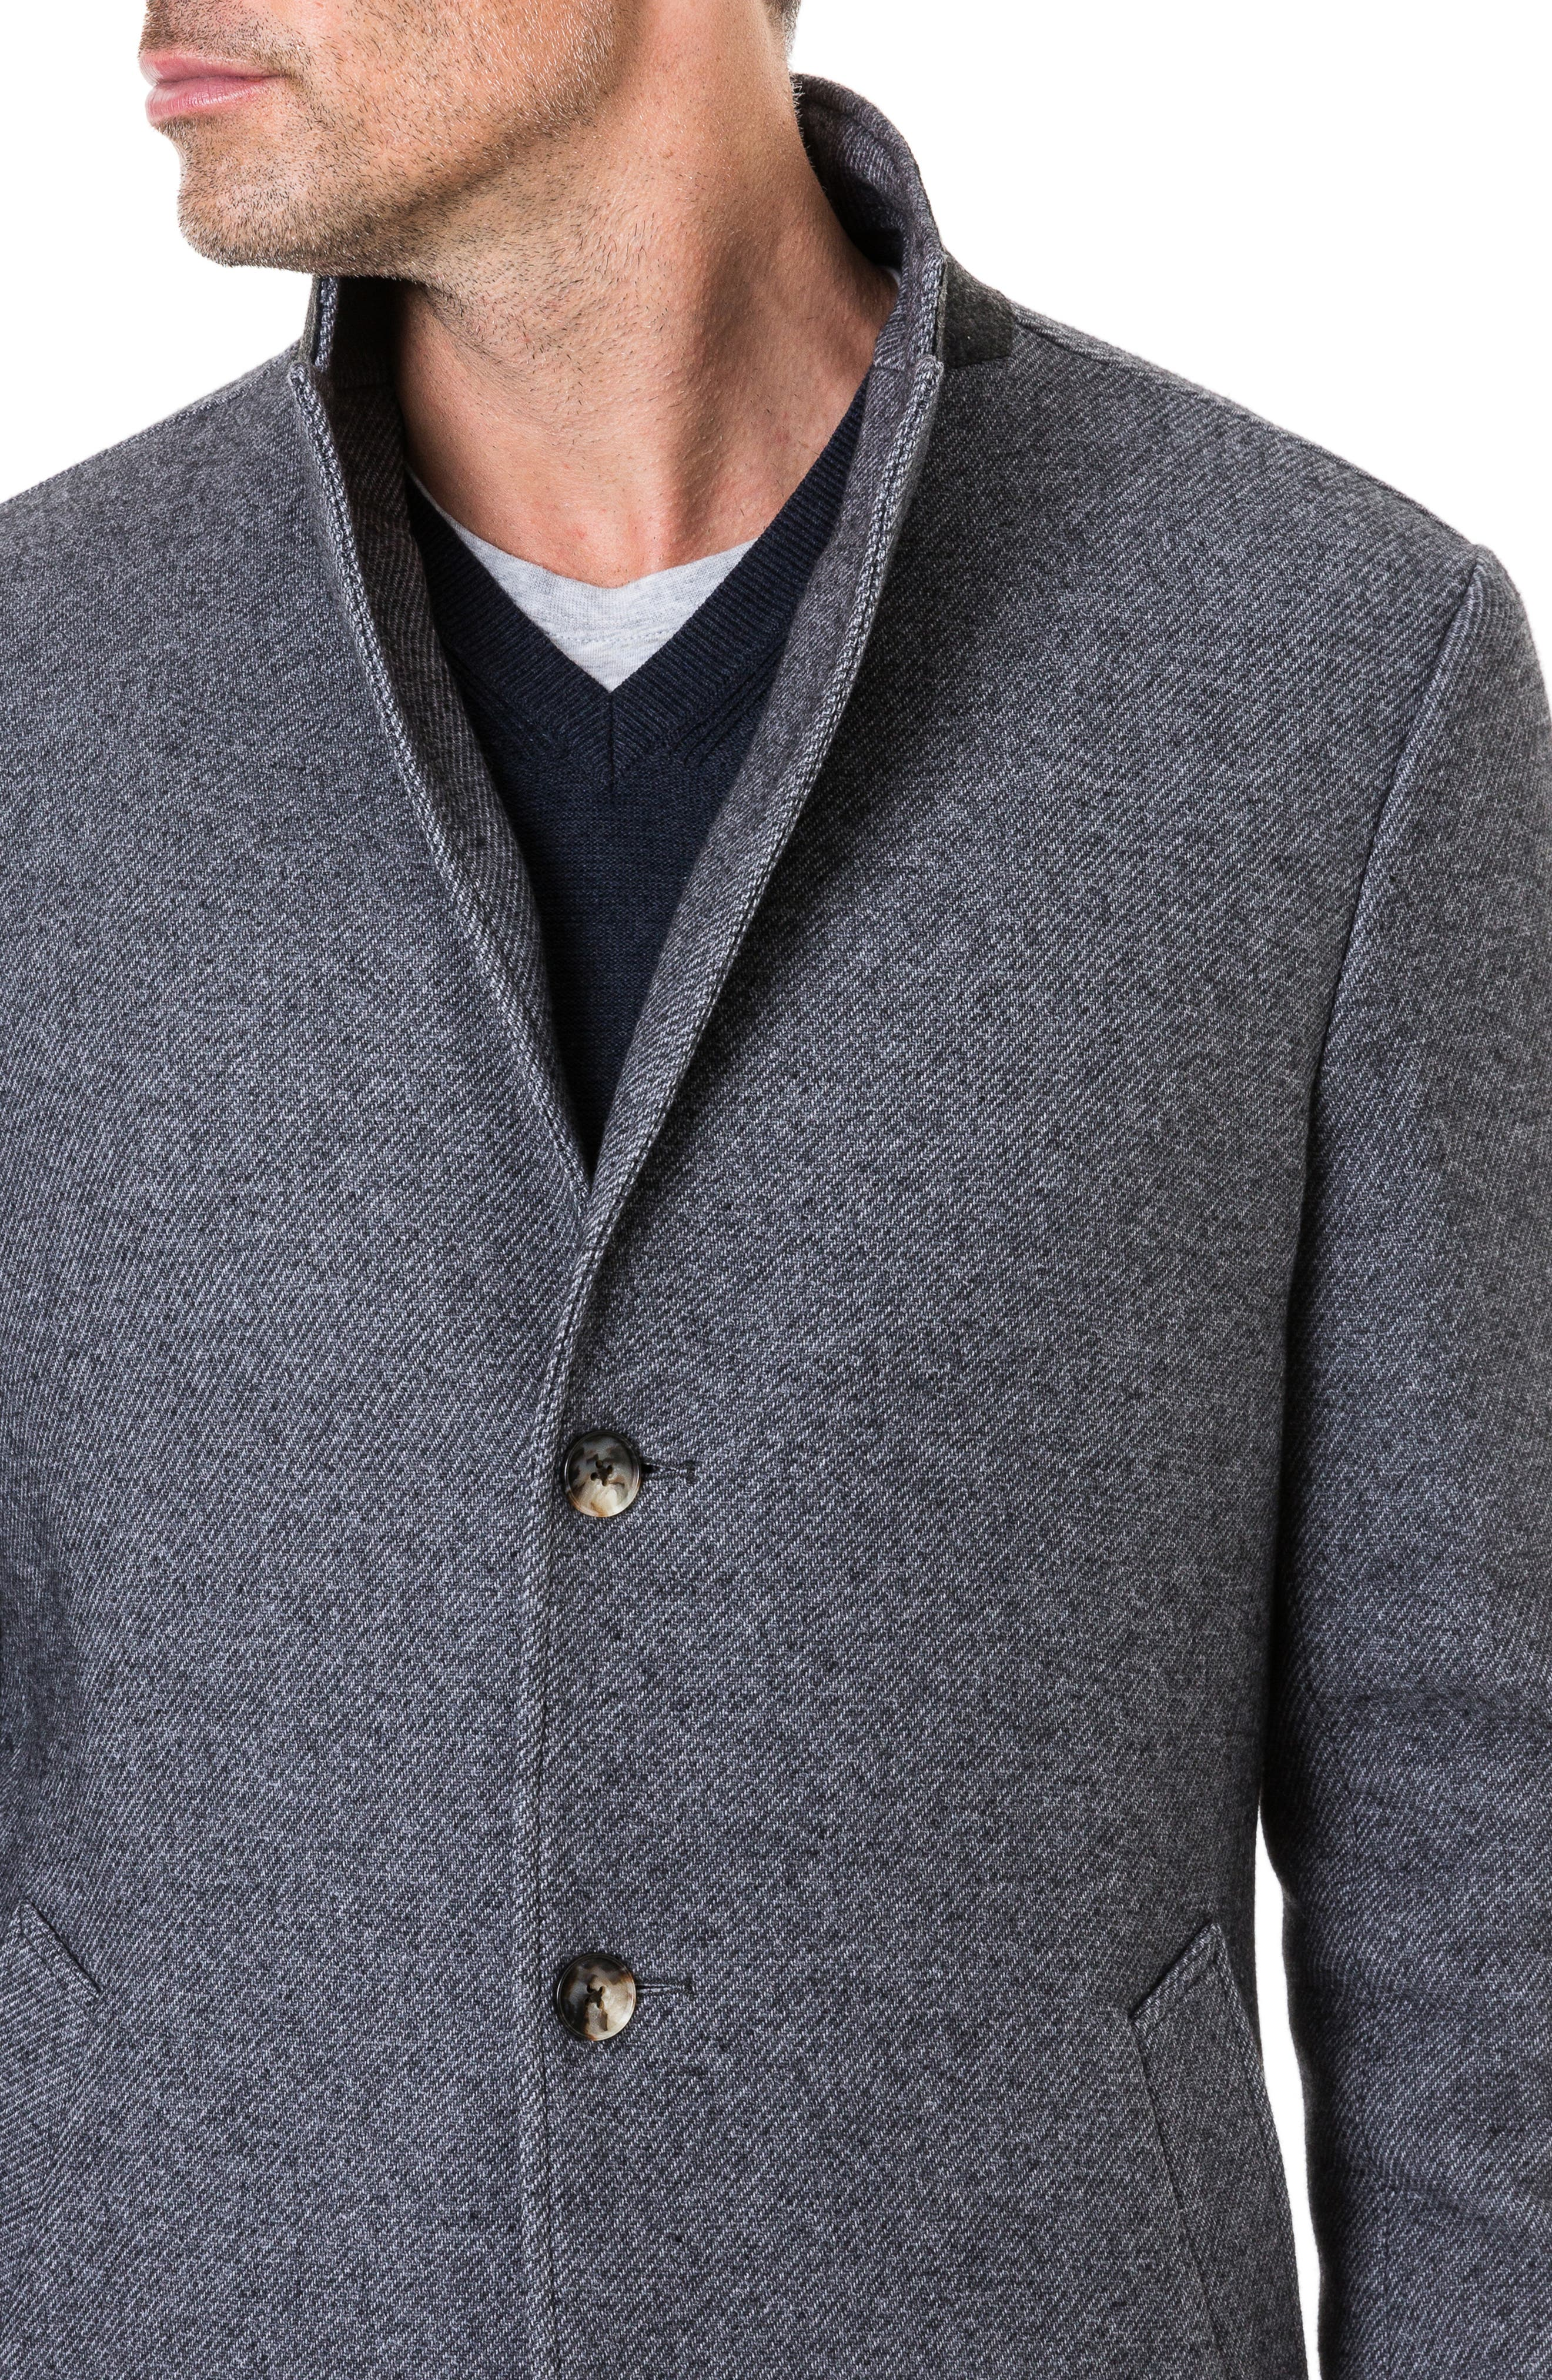 Calton Hill Wool Blend Coat,                             Alternate thumbnail 3, color,                             020